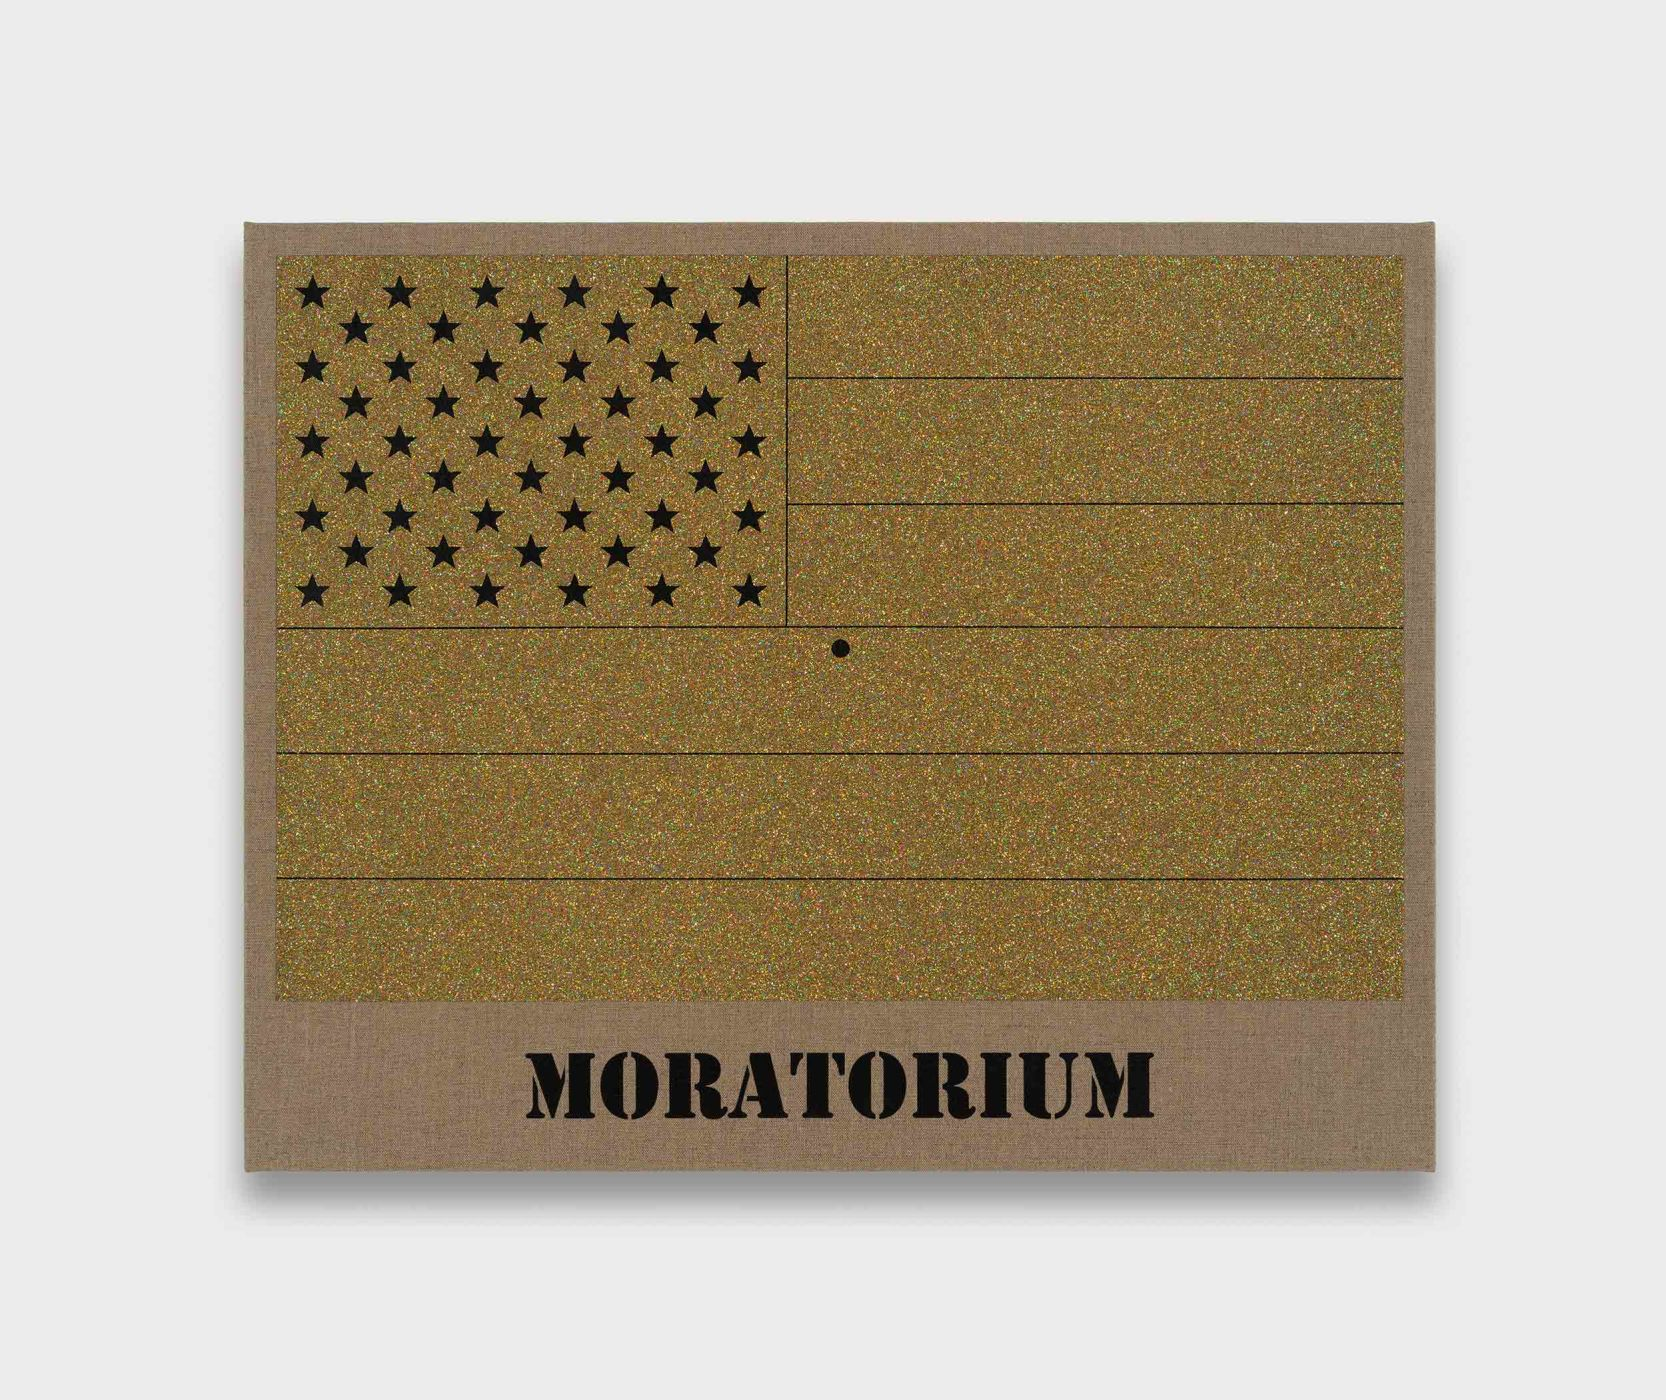 "<div class=""title""><em>Moratorium (Gold Rainbow American Flag for Jasper in the Style of the Artist's Boyfriend)</em>, 2017</div><div class=""medium"">glitter and enamel on linen</div><div class=""dimensions"">57.0 x 71.5 x 3.5 cm<br />22 3/8 x 28 1/8 x 1 3/8 in.</div>"